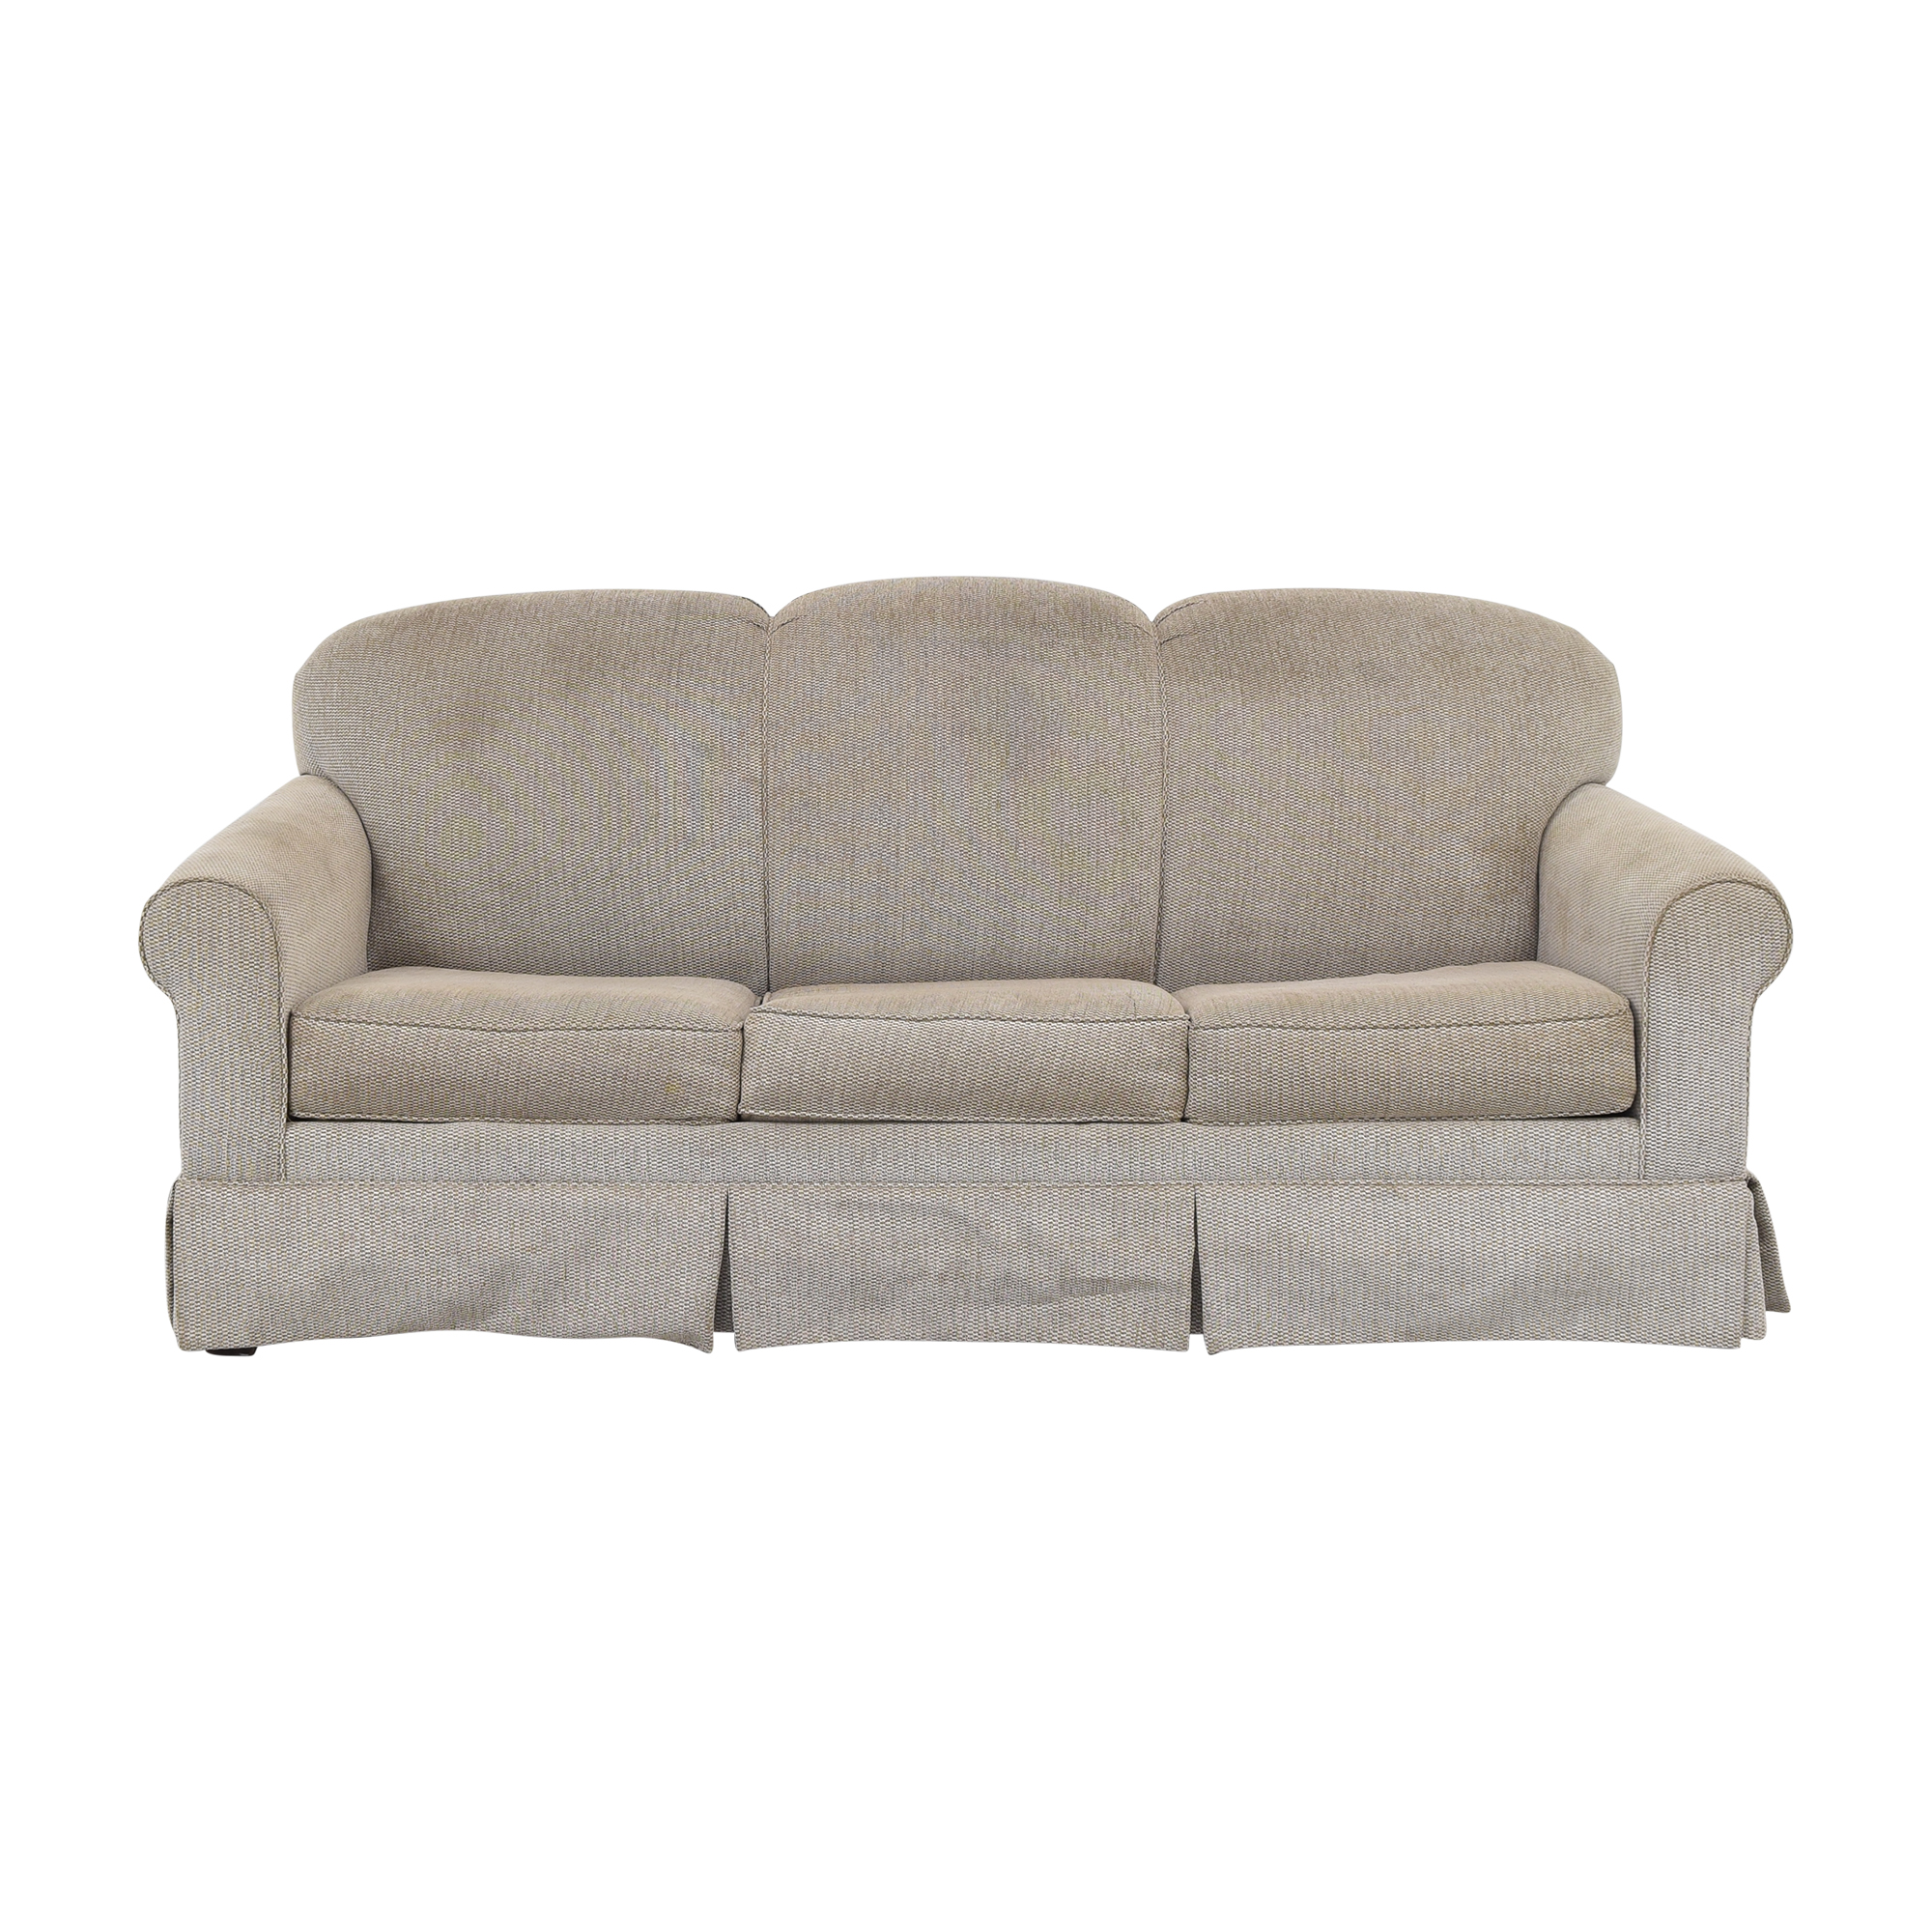 Craftmaster Furniture Craftmaster Full Size Sleeper Sofa coupon